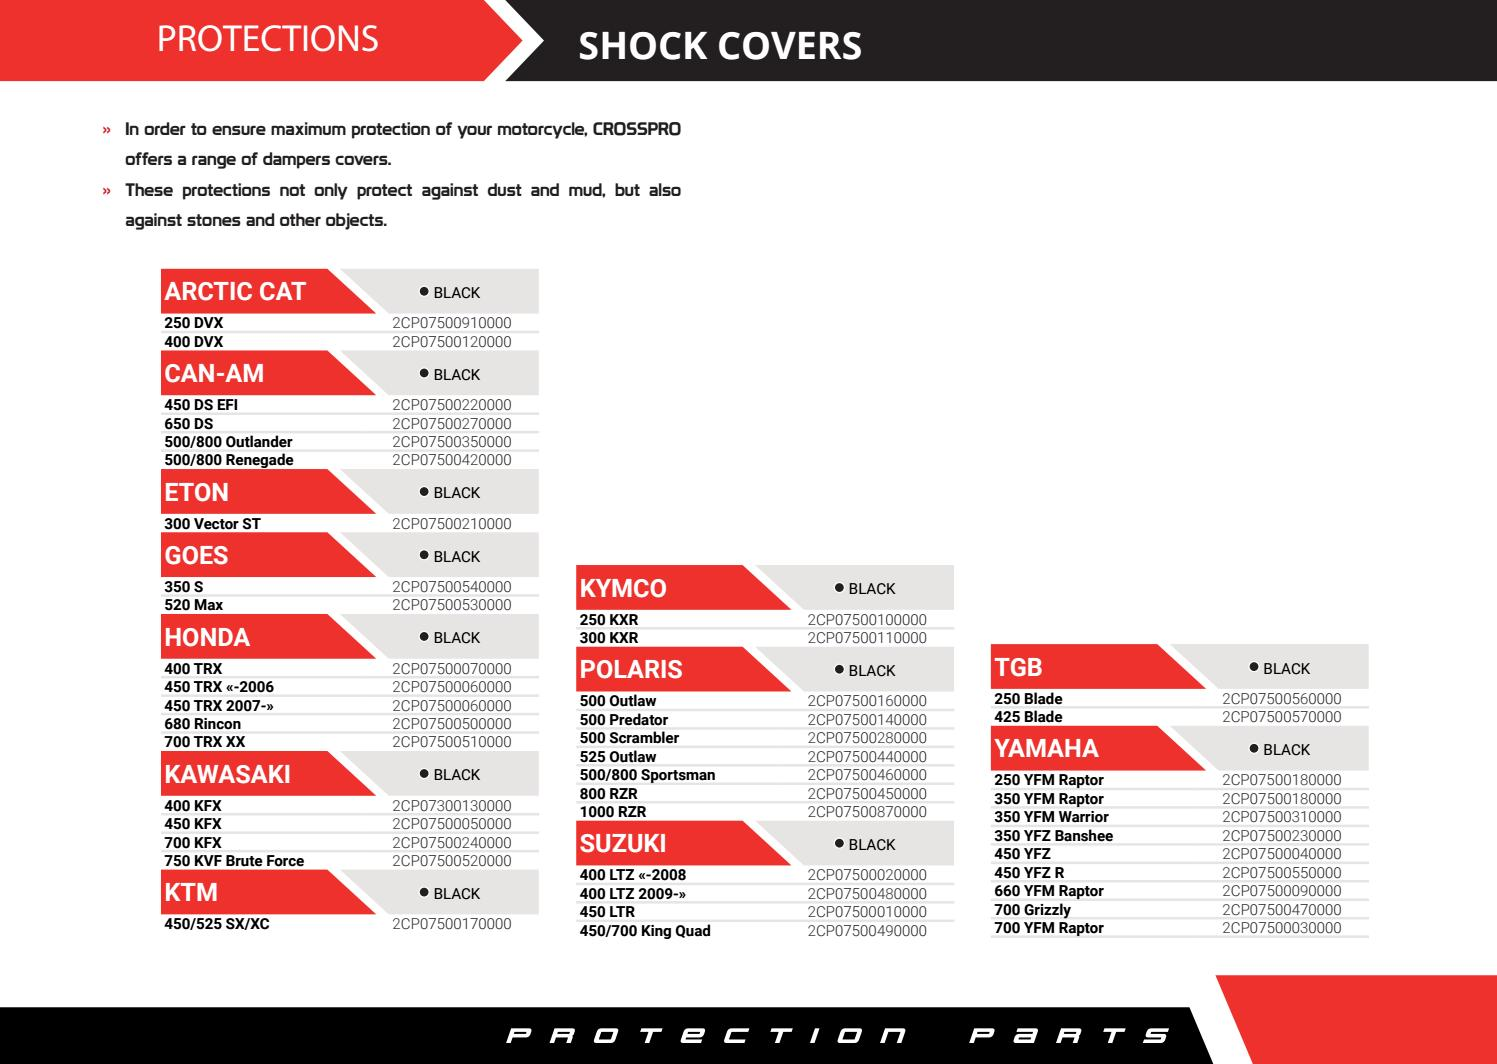 Crosspro - Quad Shock Covers by Motor Race - issuu